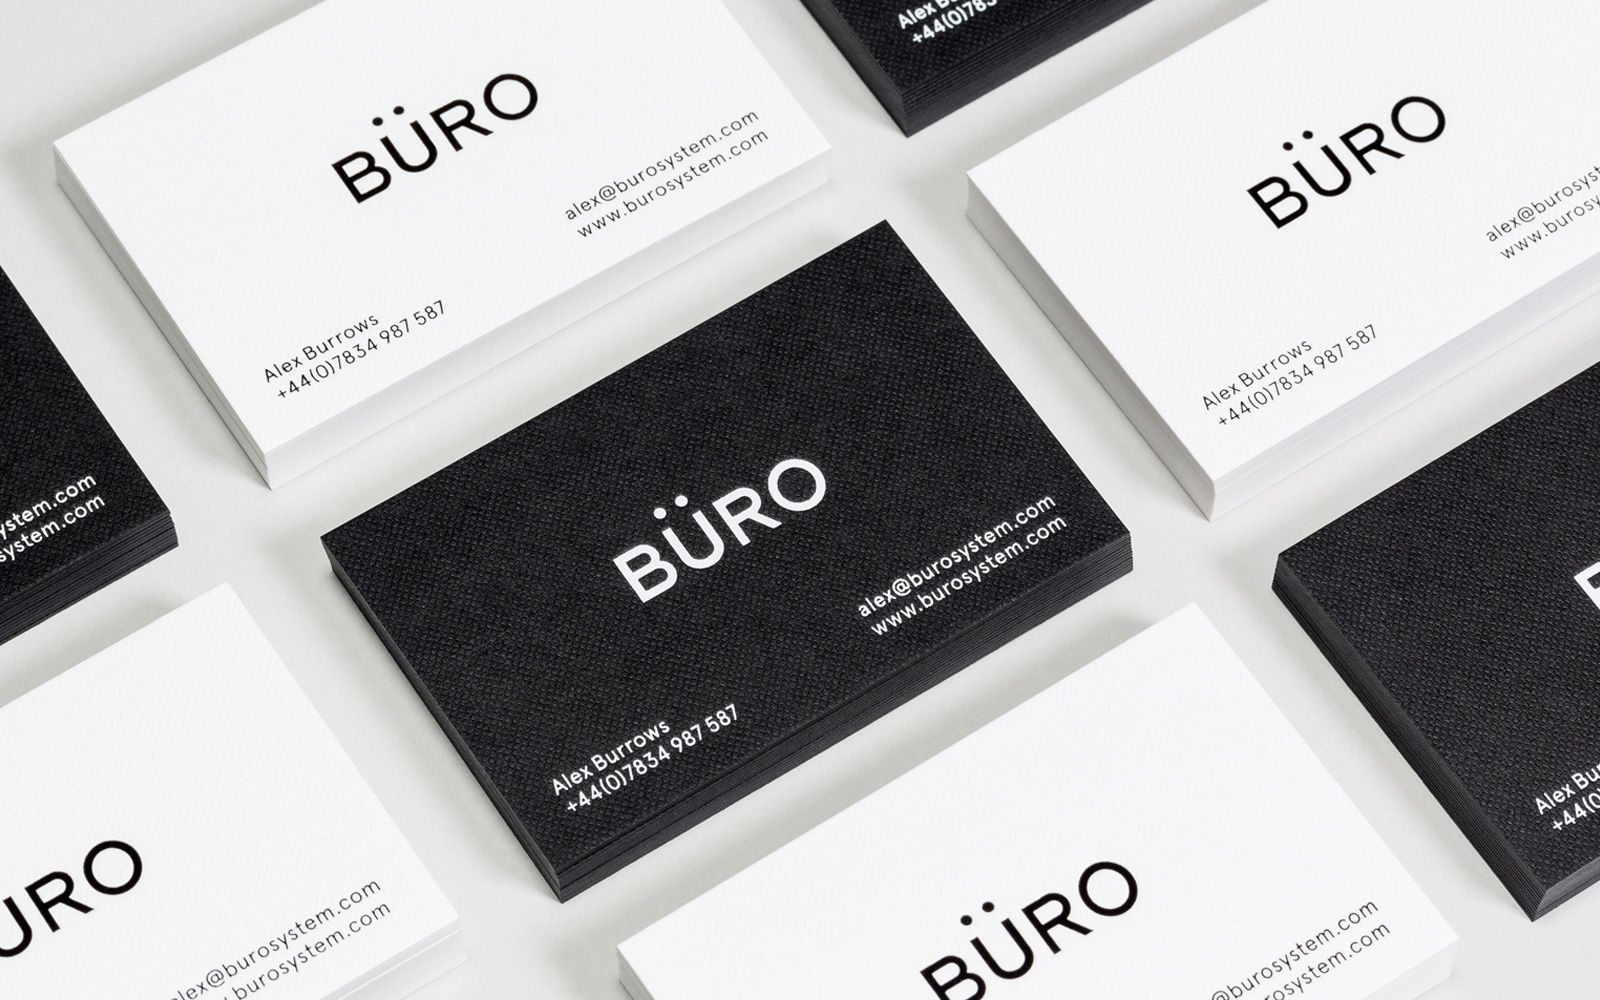 Business Cards Design Inspiration #010 | youandsaturation | Identity ...